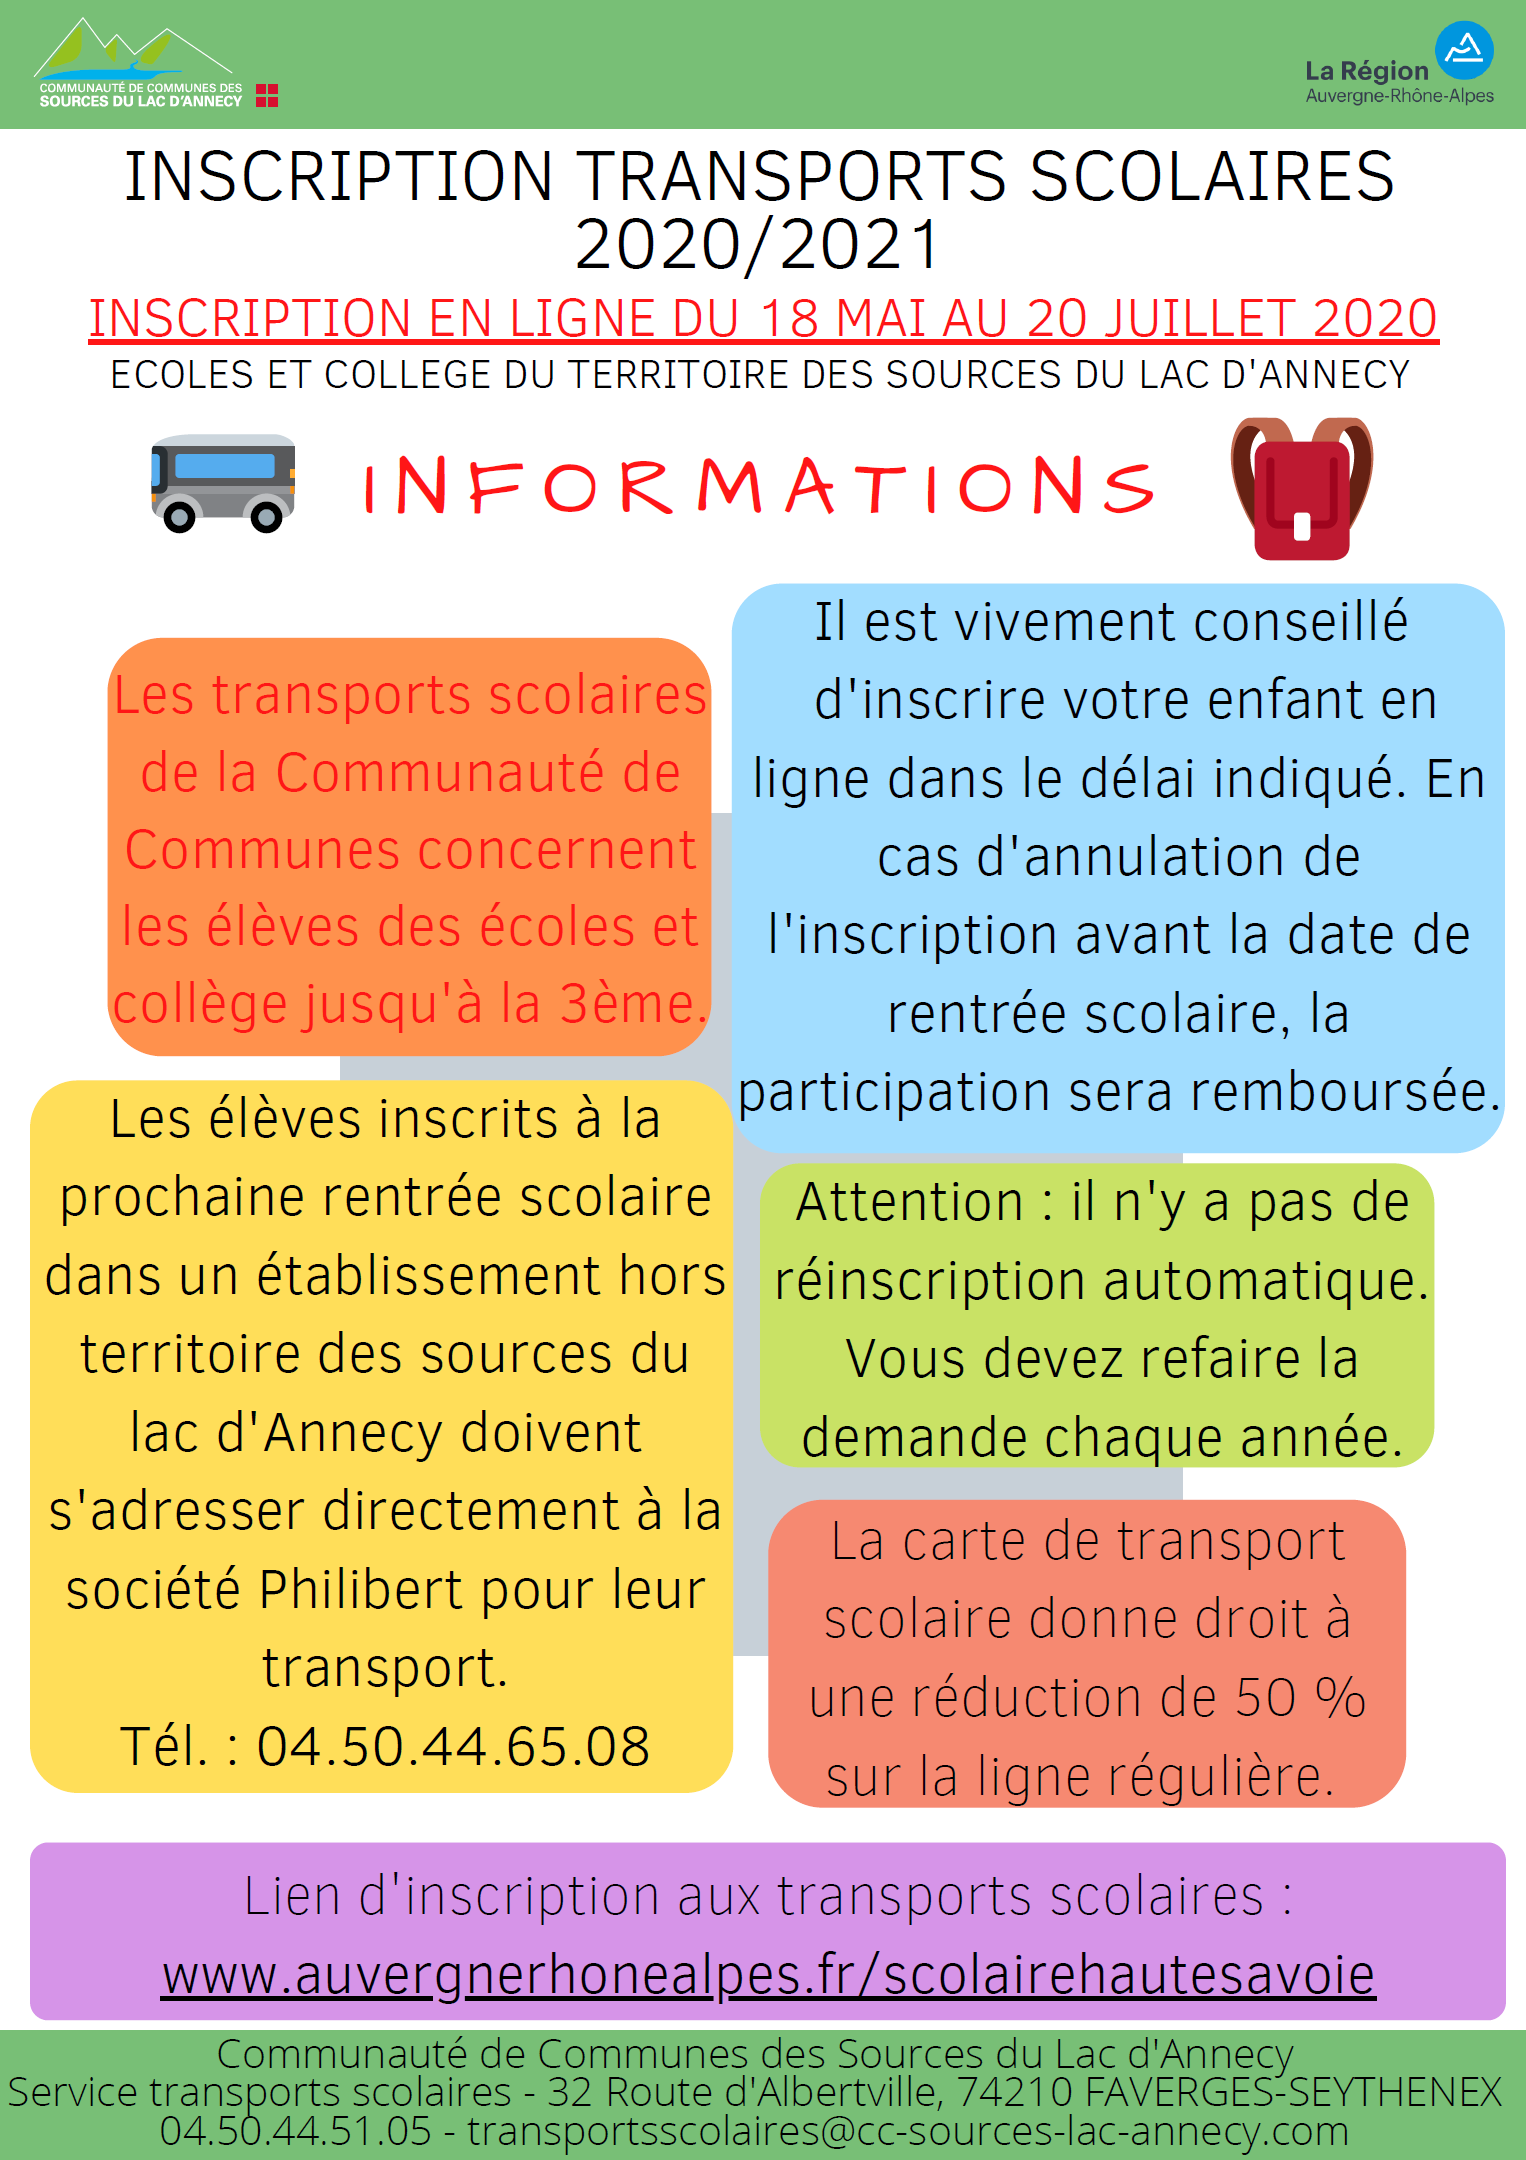 Informations inscriptions transport scolaires 2020-2021